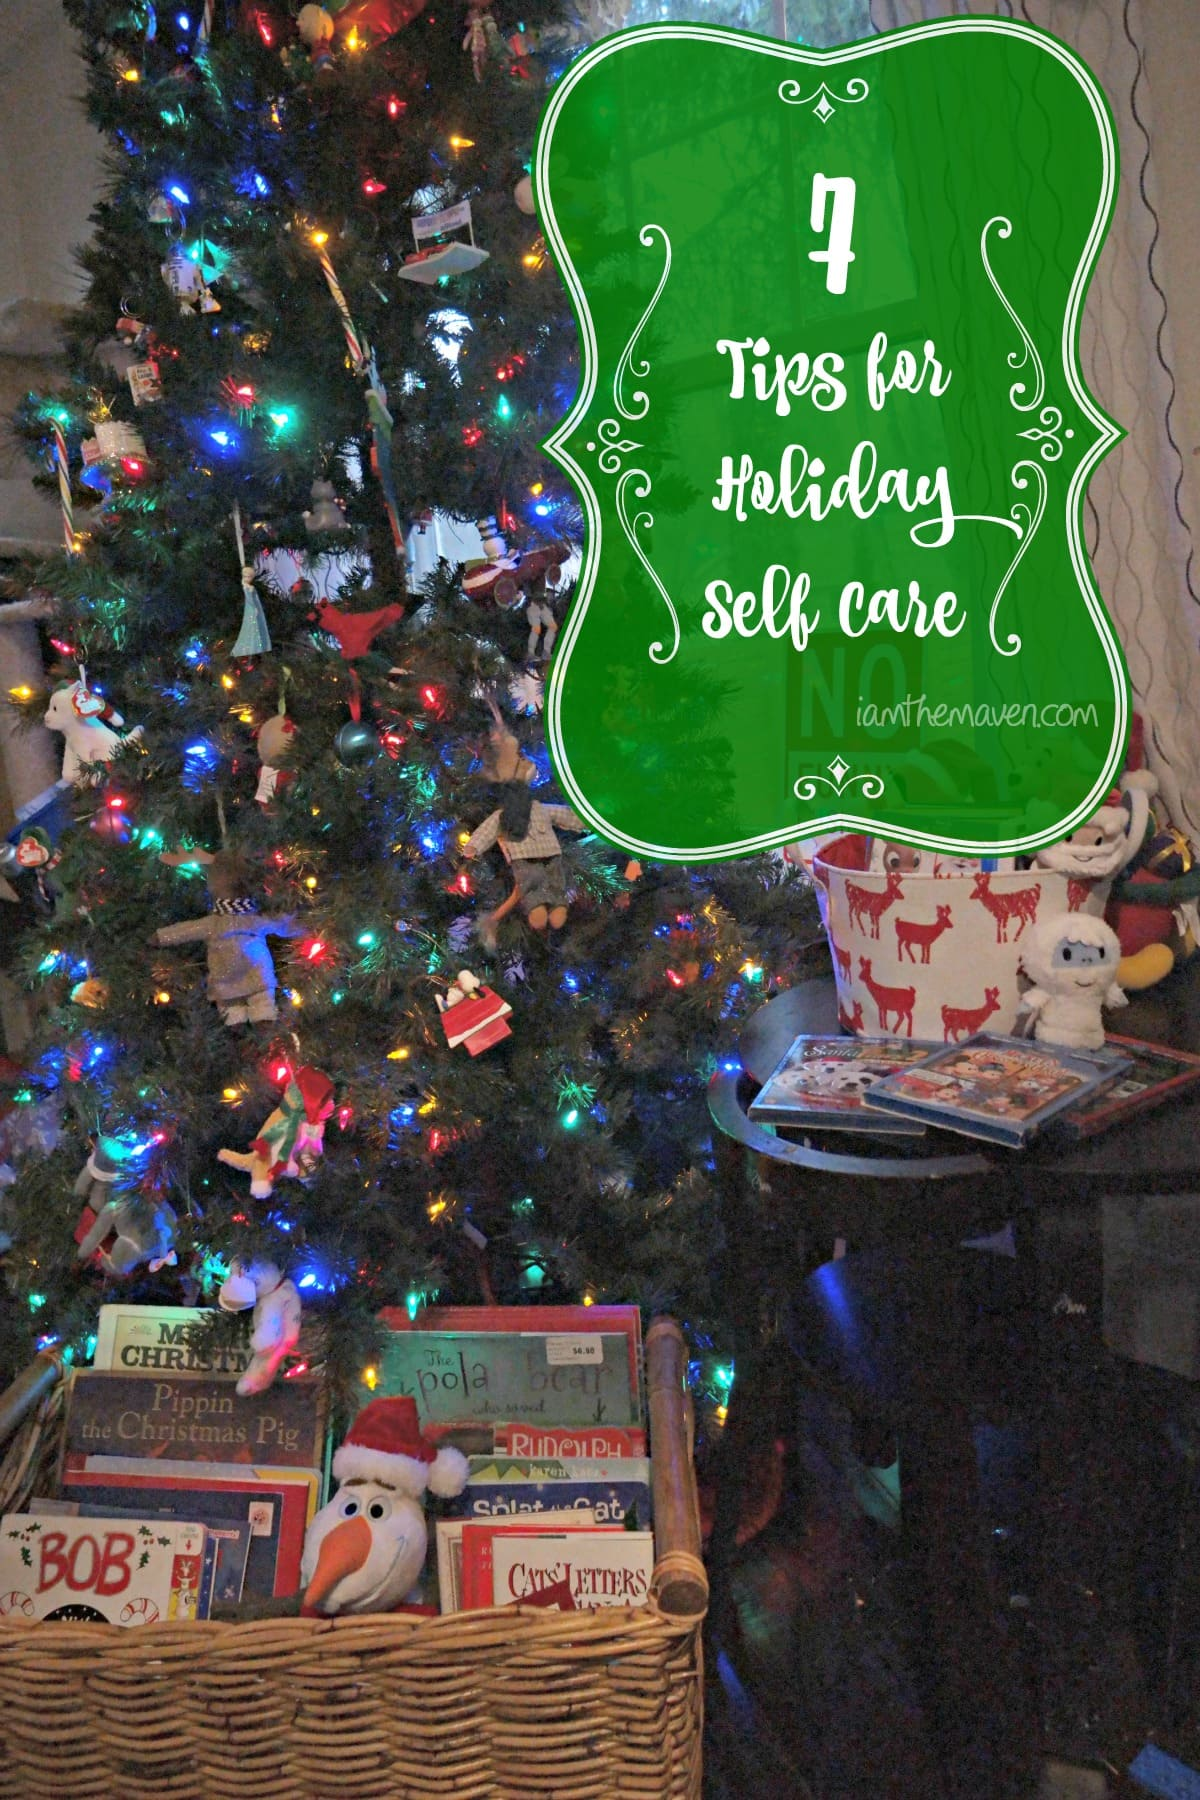 7 Tips For Holiday Self Care